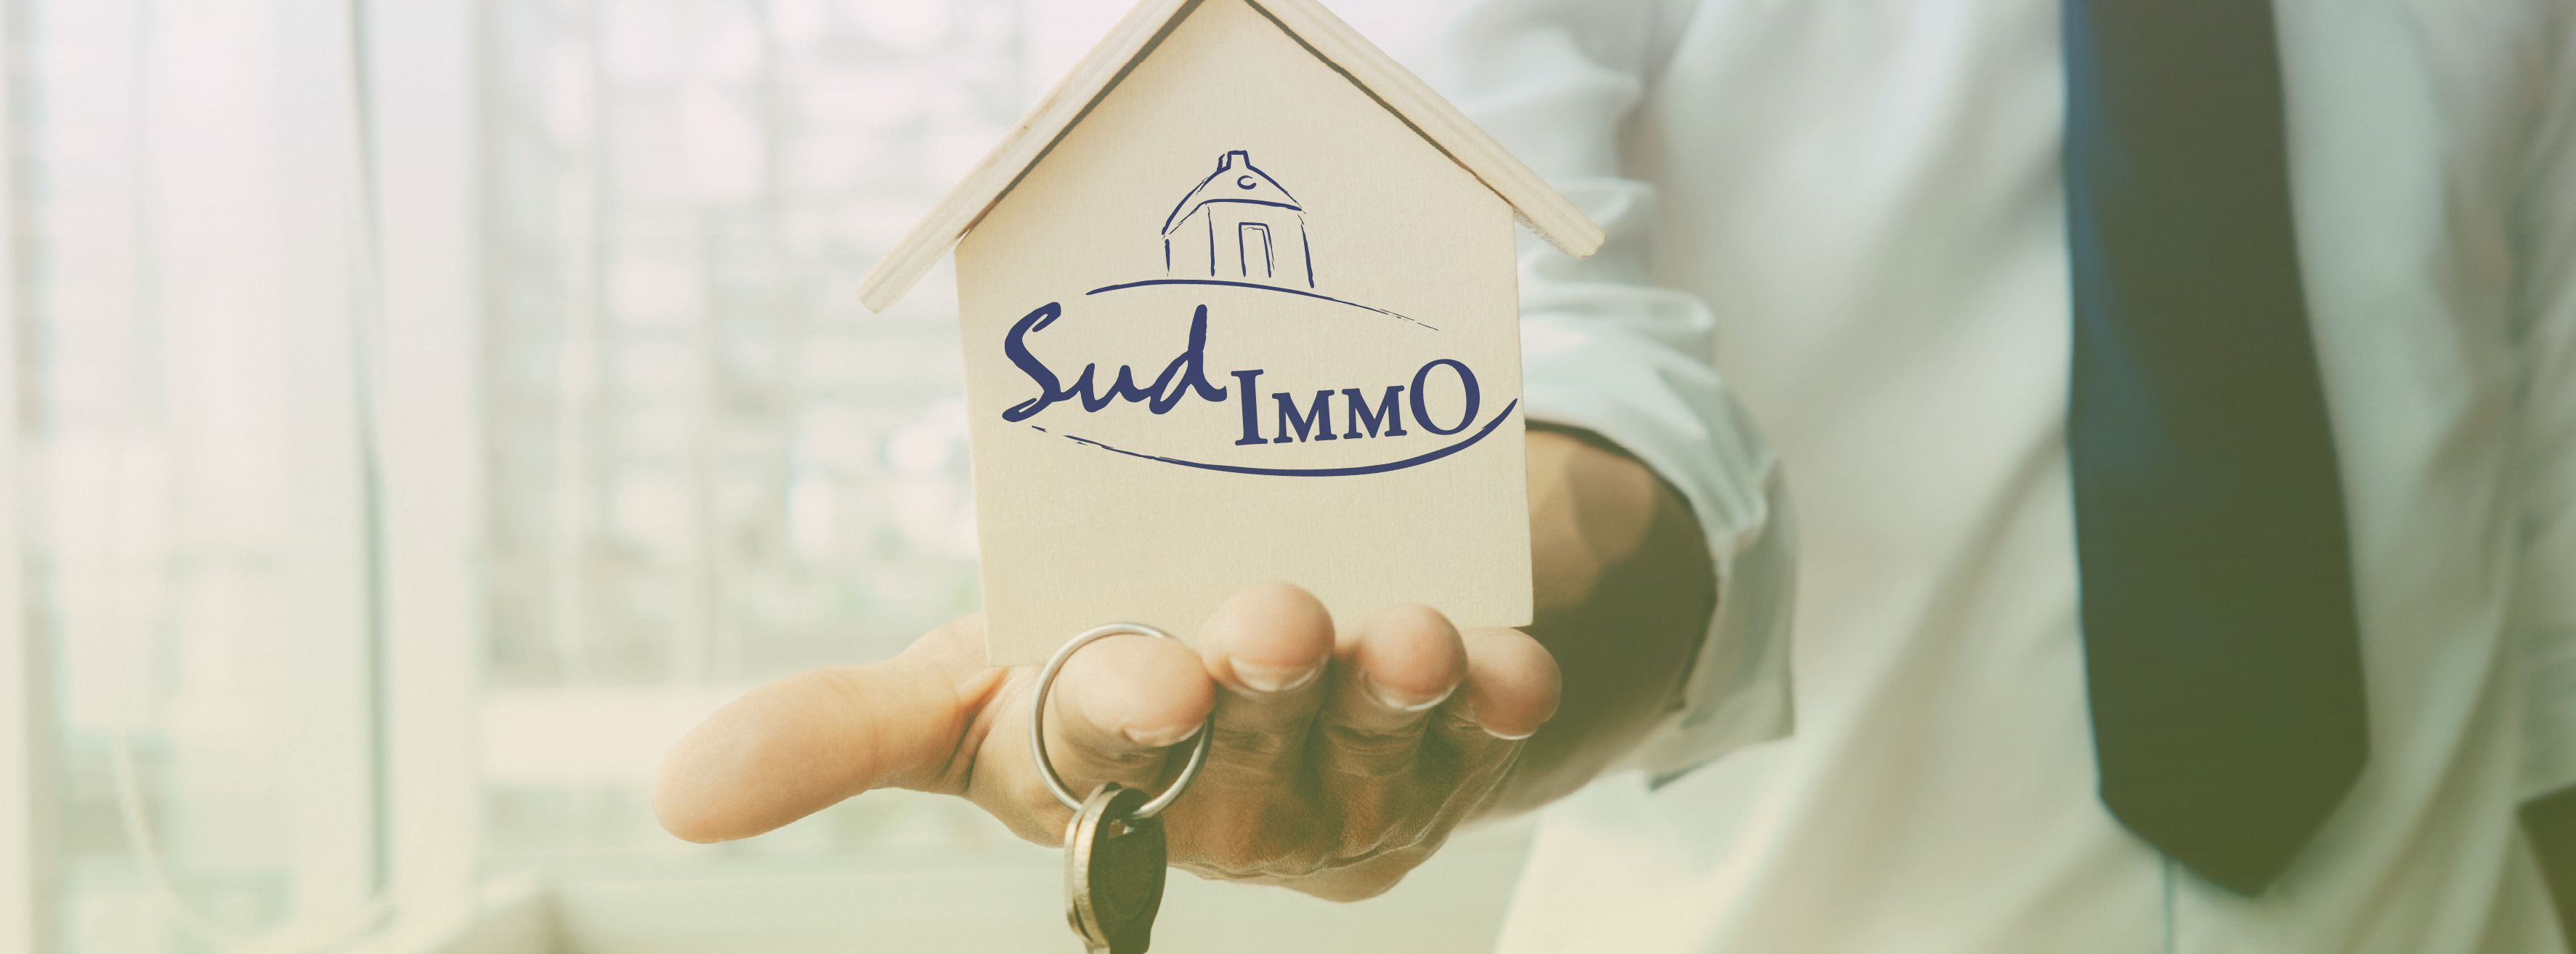 Sud Immo - Agence immobilière Florenville Gaume Belgique - Yves Costa